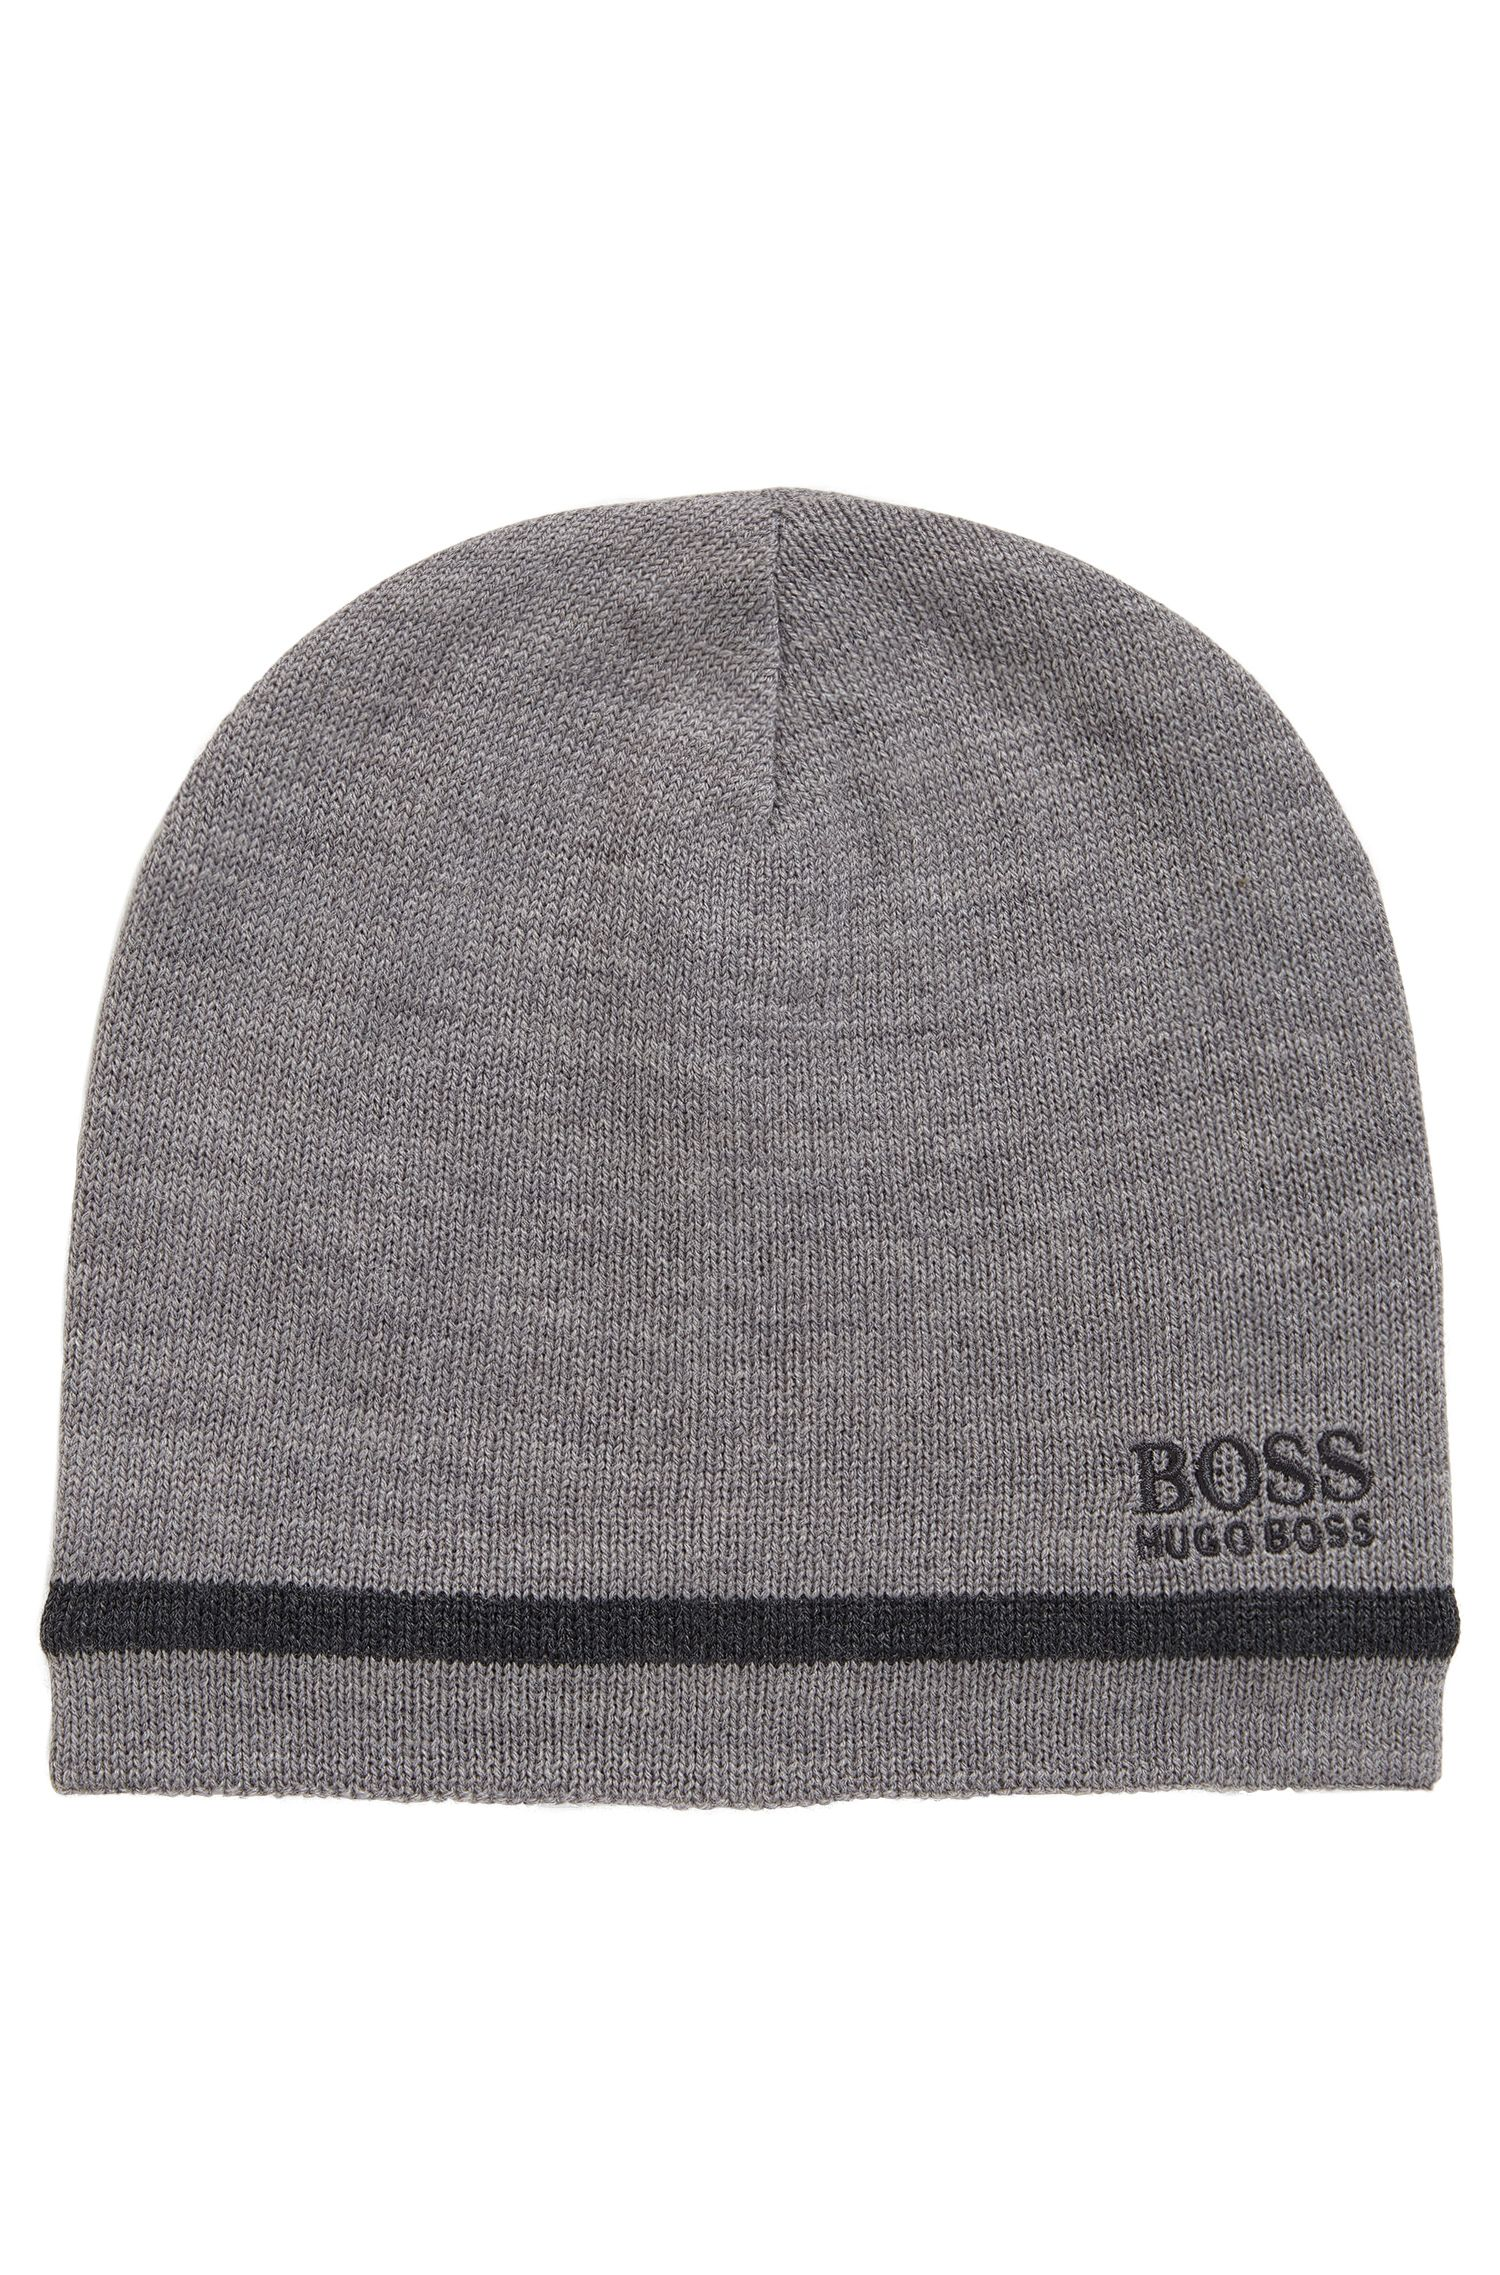 Reversible beanie with embroidered logo